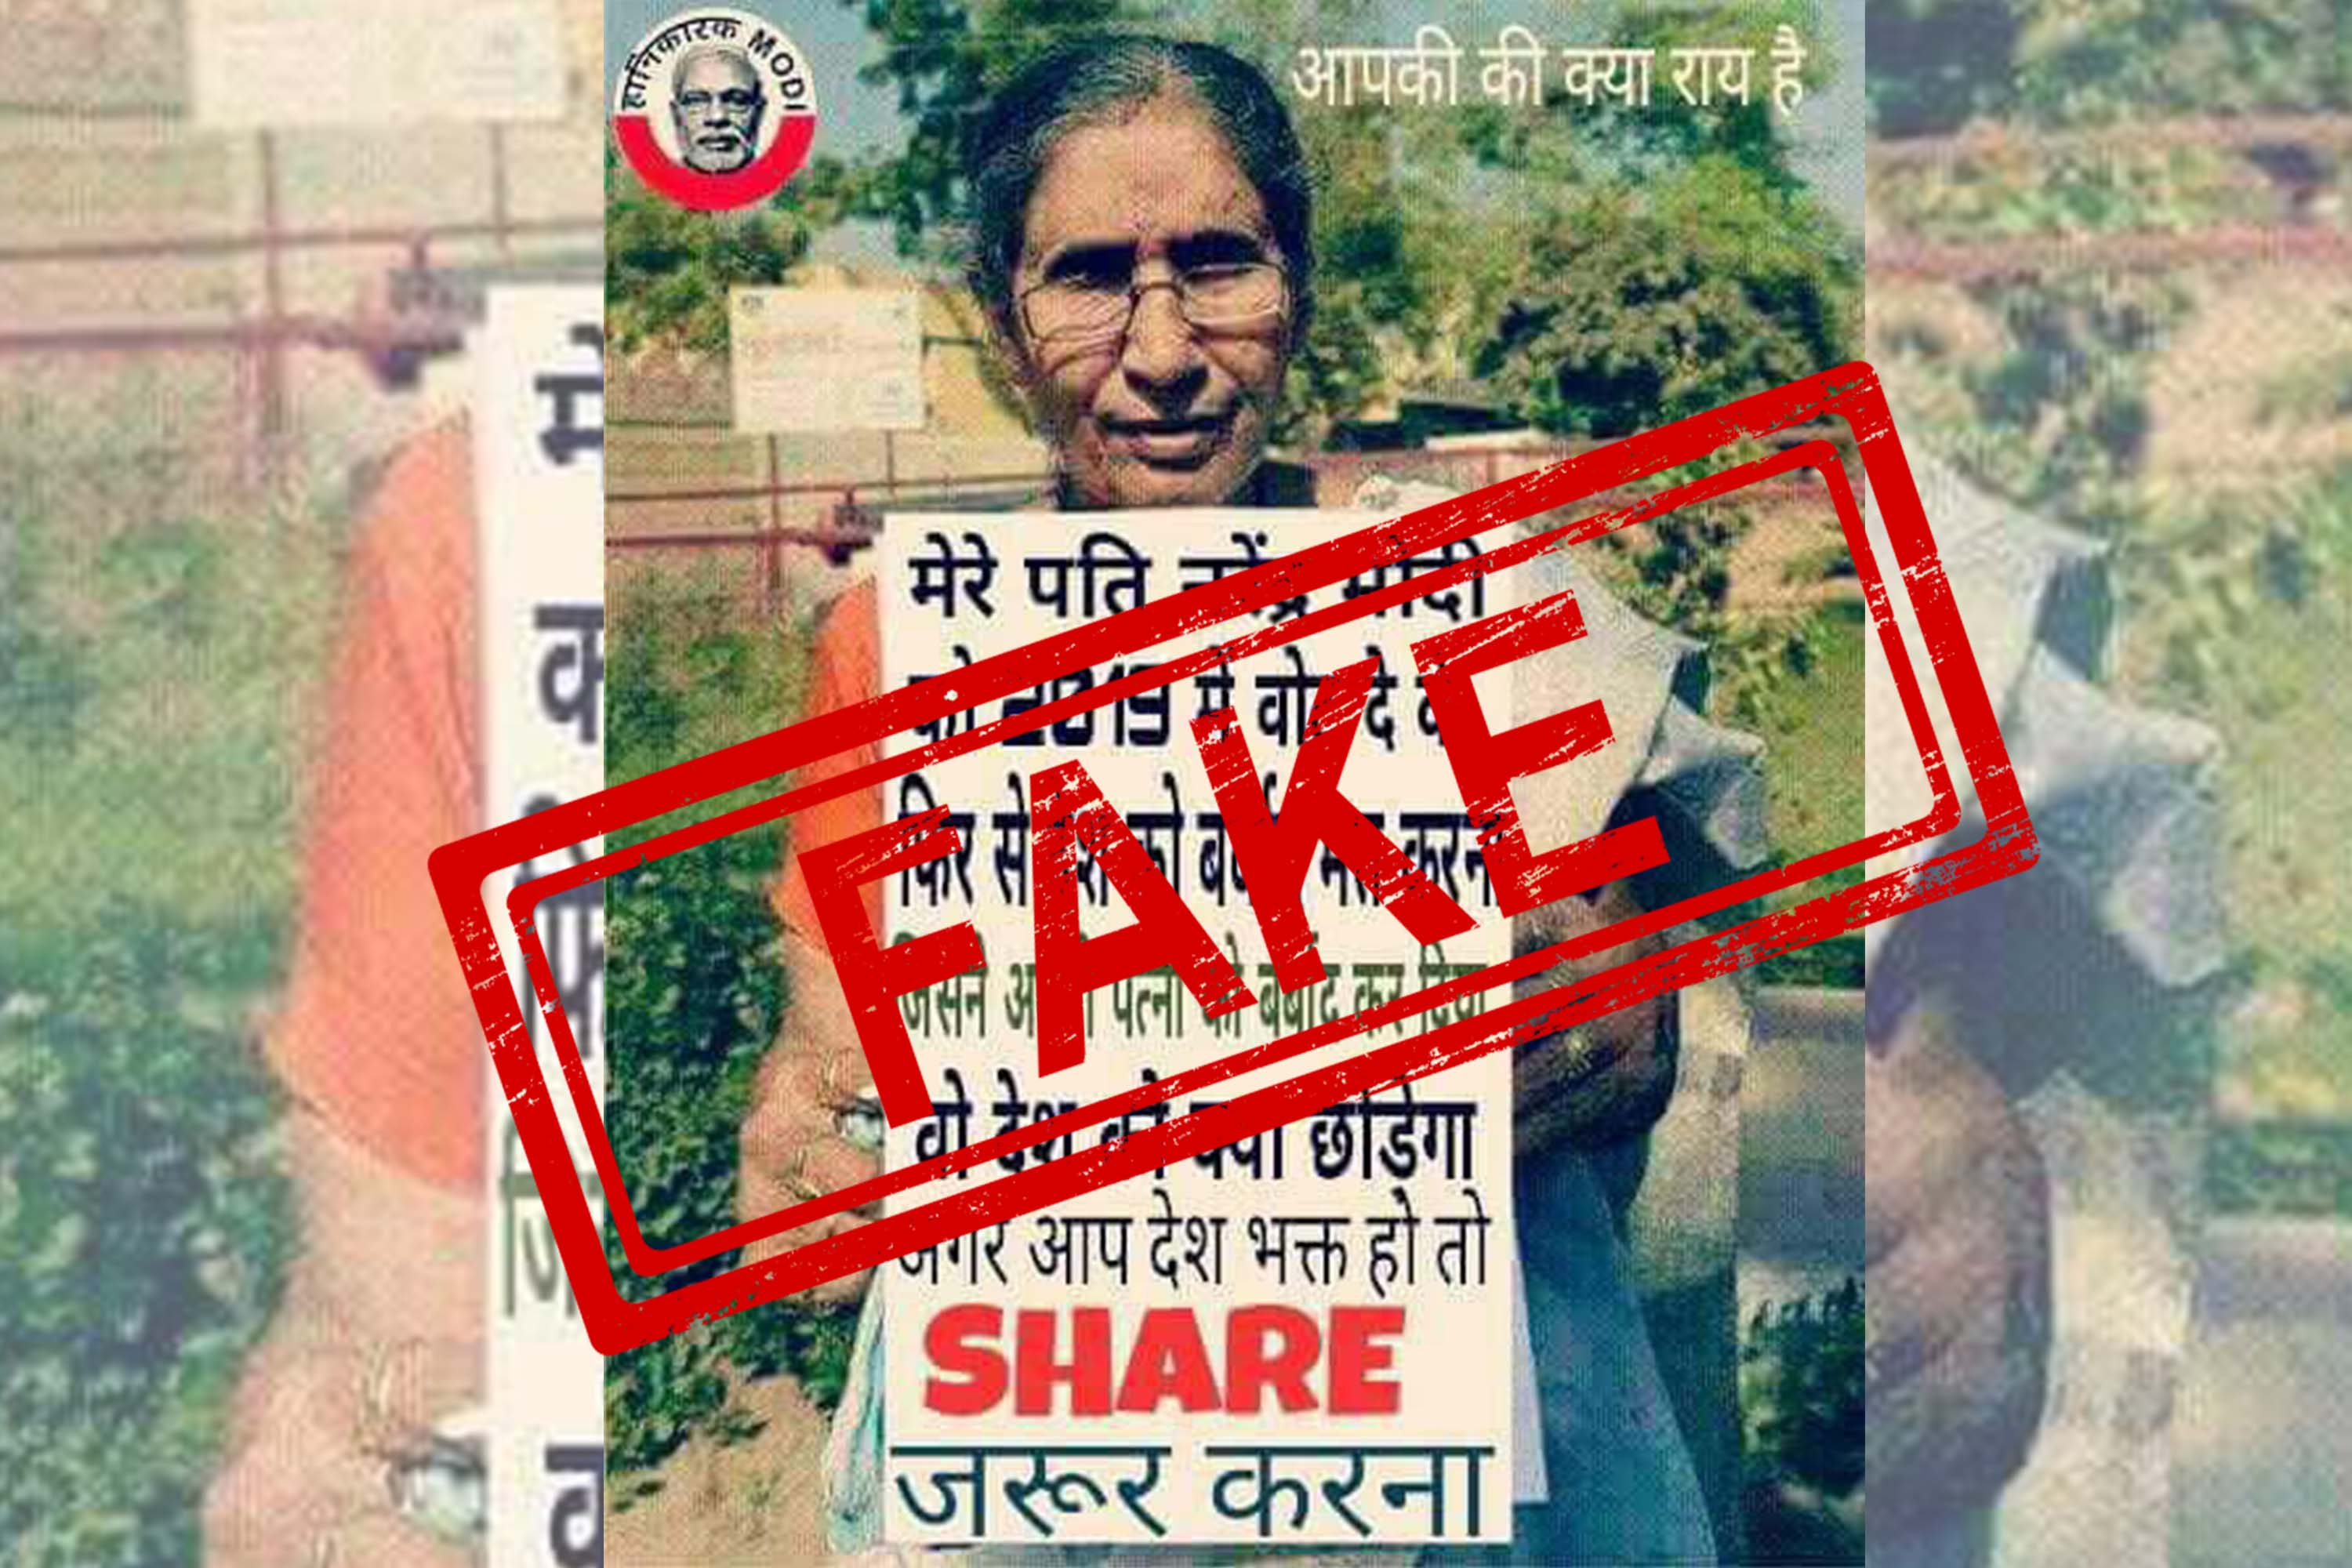 Jashodaben, Prime Minister, Narendra Modi, Wife, Lok Sabha, Polls, Elections, NewsMobile, Mobile, news, India, Fact Check, Fact Checker, Fake, News